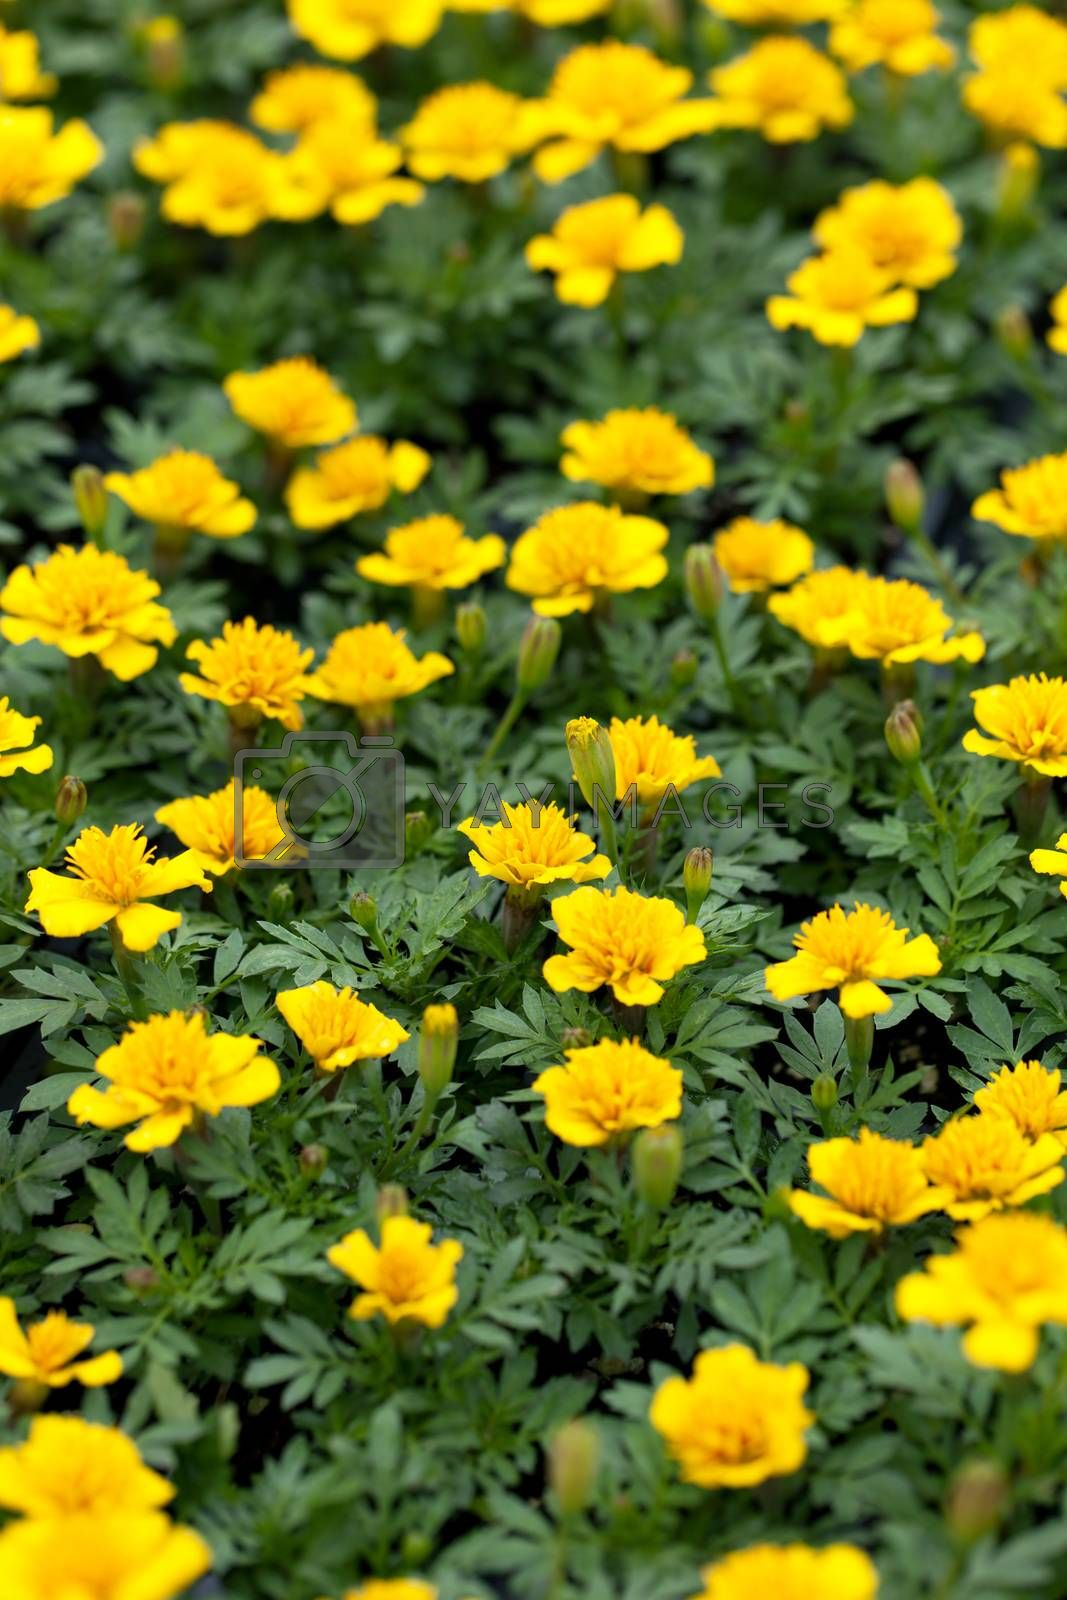 Yellow marigold flower plants macro closeup with a shallow depth of field.